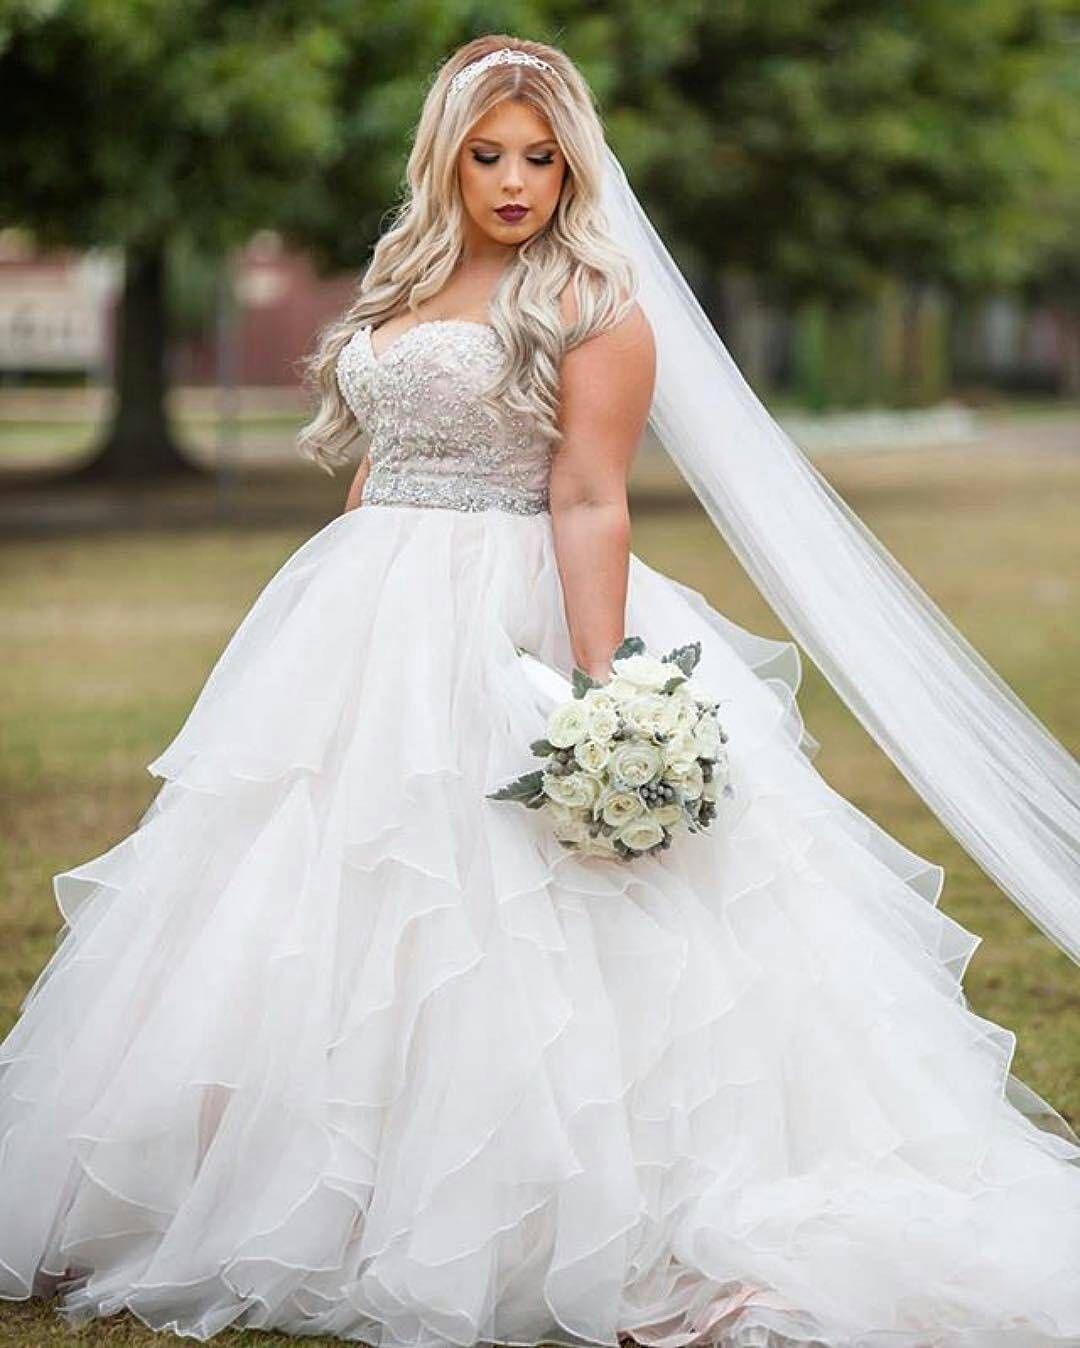 Custom plus size wedding dresses pinterest dressmaker for Plus size wedding dress designers